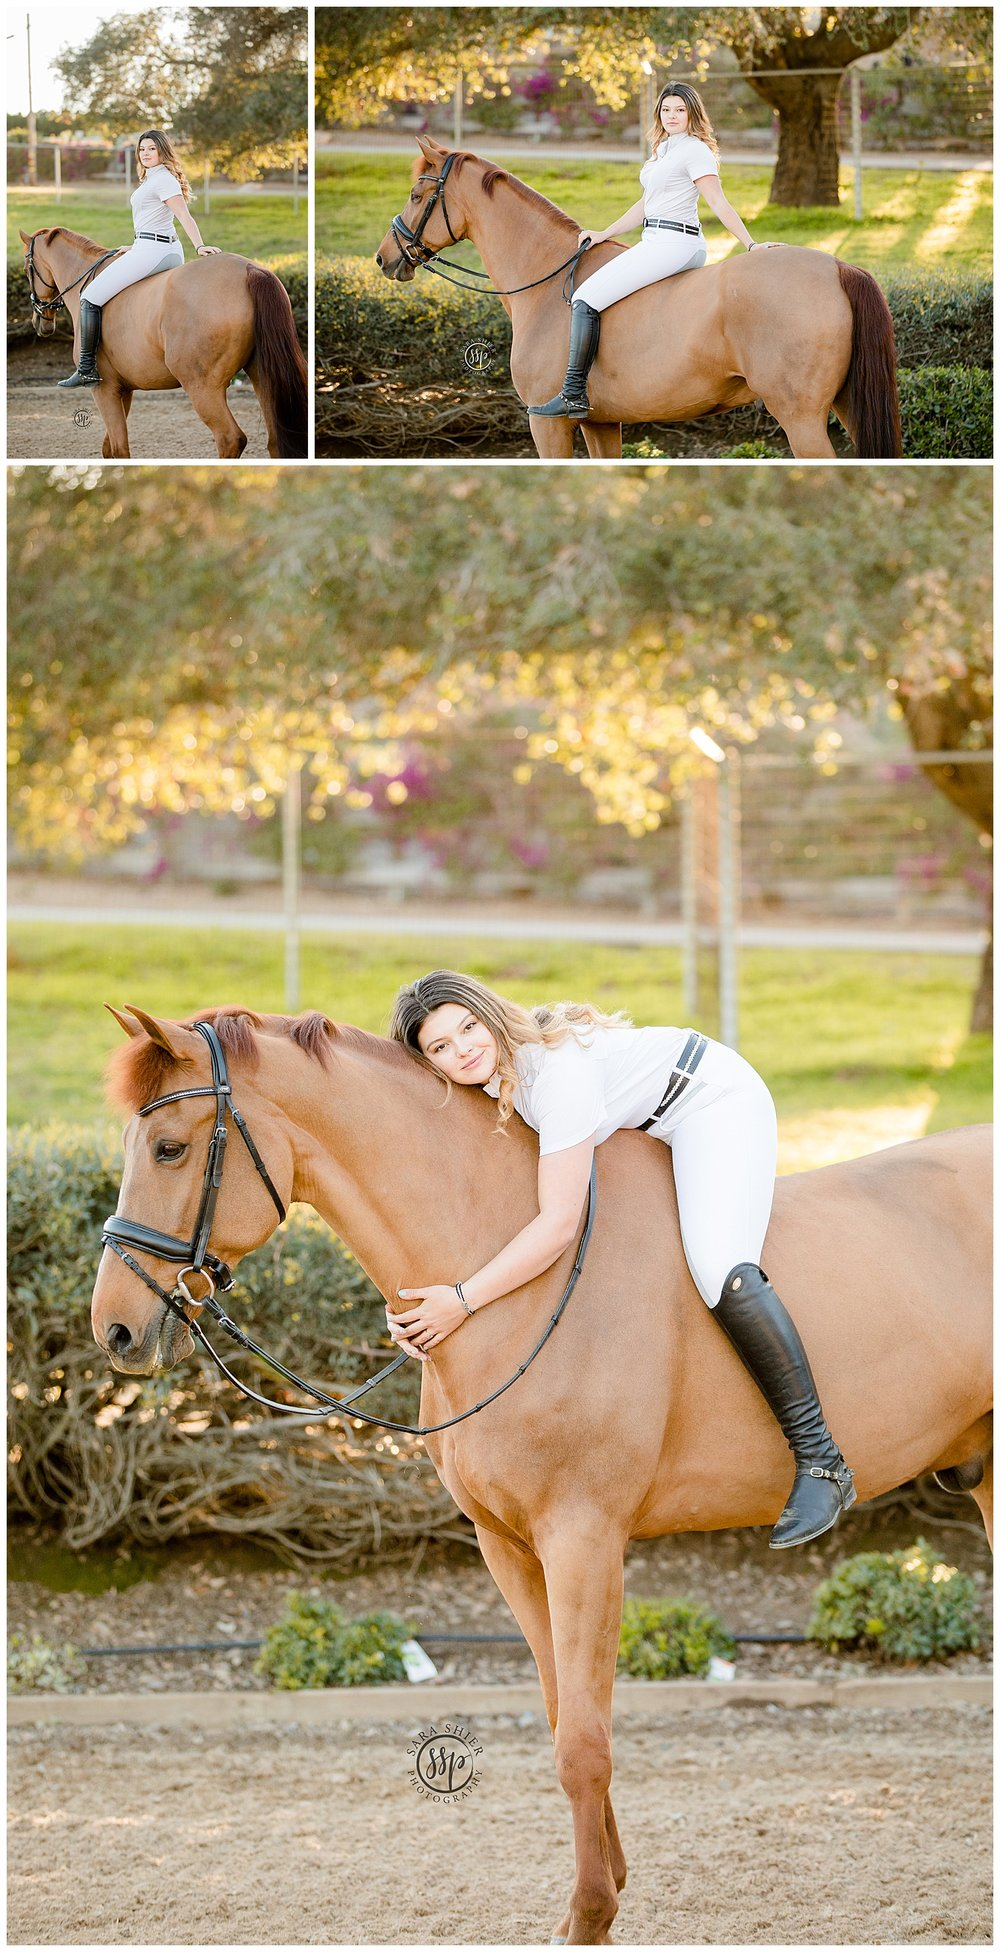 Black Background Horse Rider Equine Photographer Southern California Sara Shier Photography SoCal Equestrian Cowgirl_0435.jpg